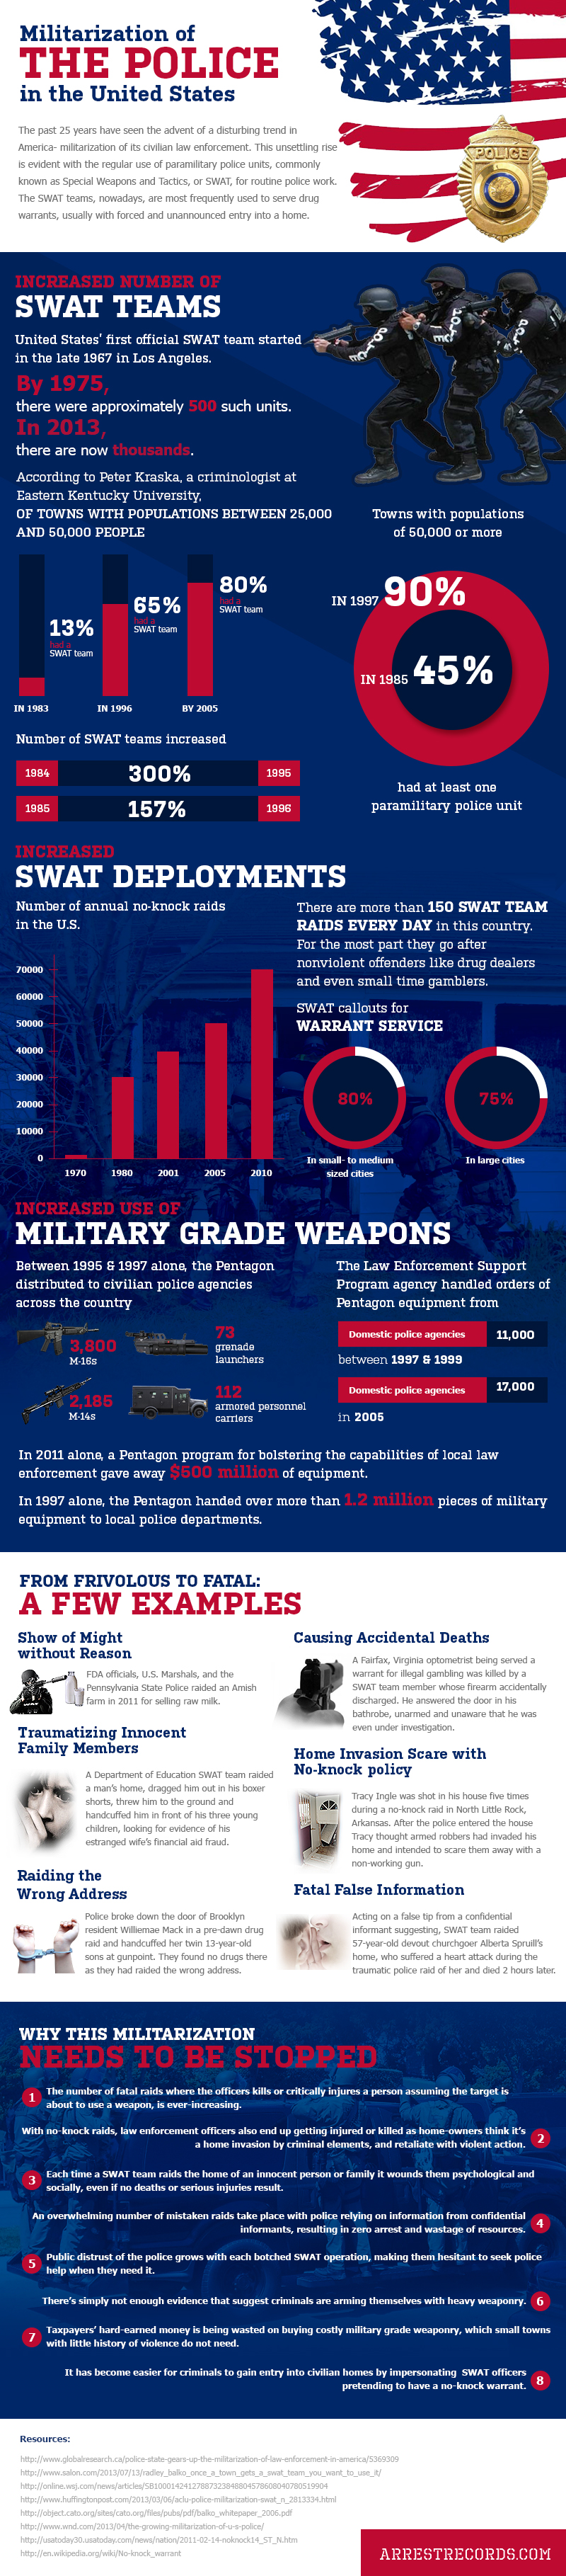 Police militarization infographic